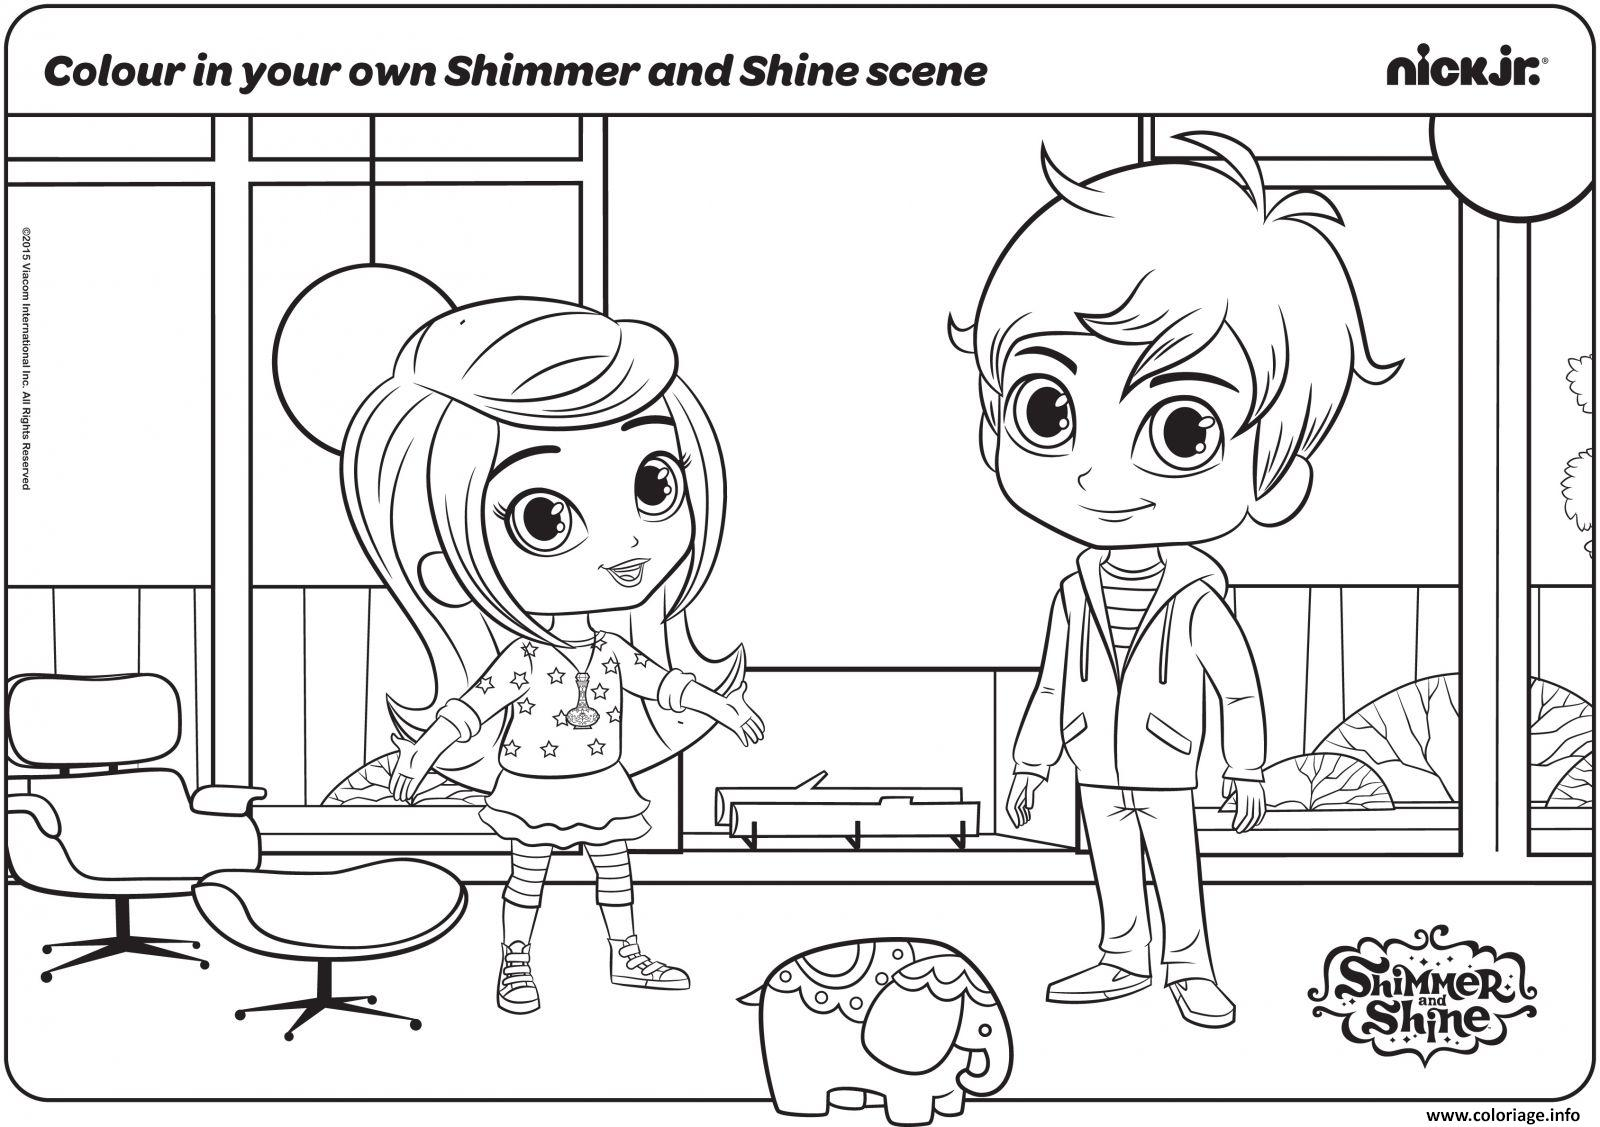 Coloriage Colour In Your Own Shimmer Et Shine Scene Dessin à Imprimer